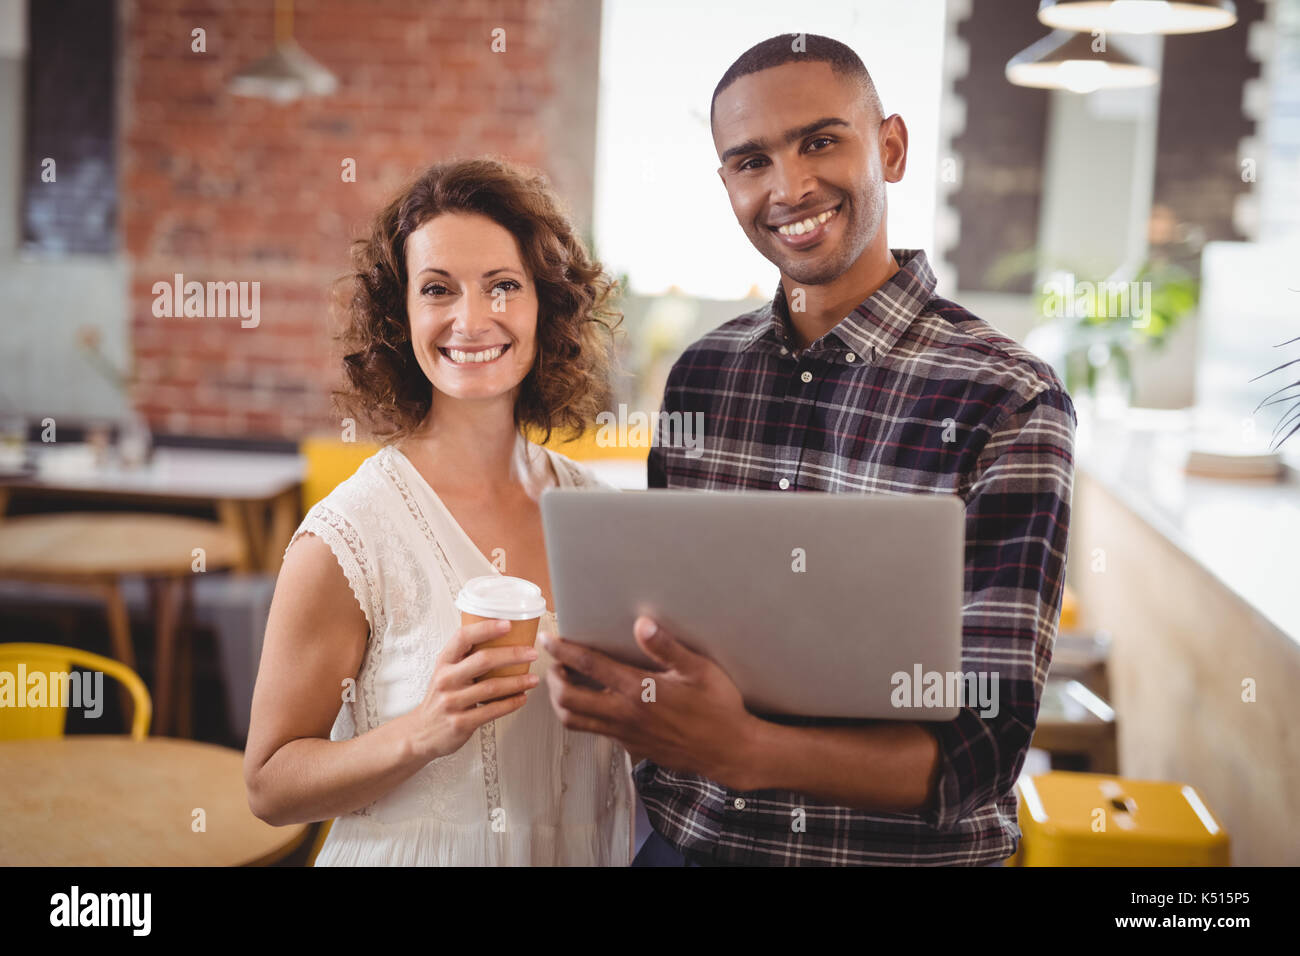 Portrait of smiling young friends standing with disposable coffee cup and laptop at cafeteria - Stock Image